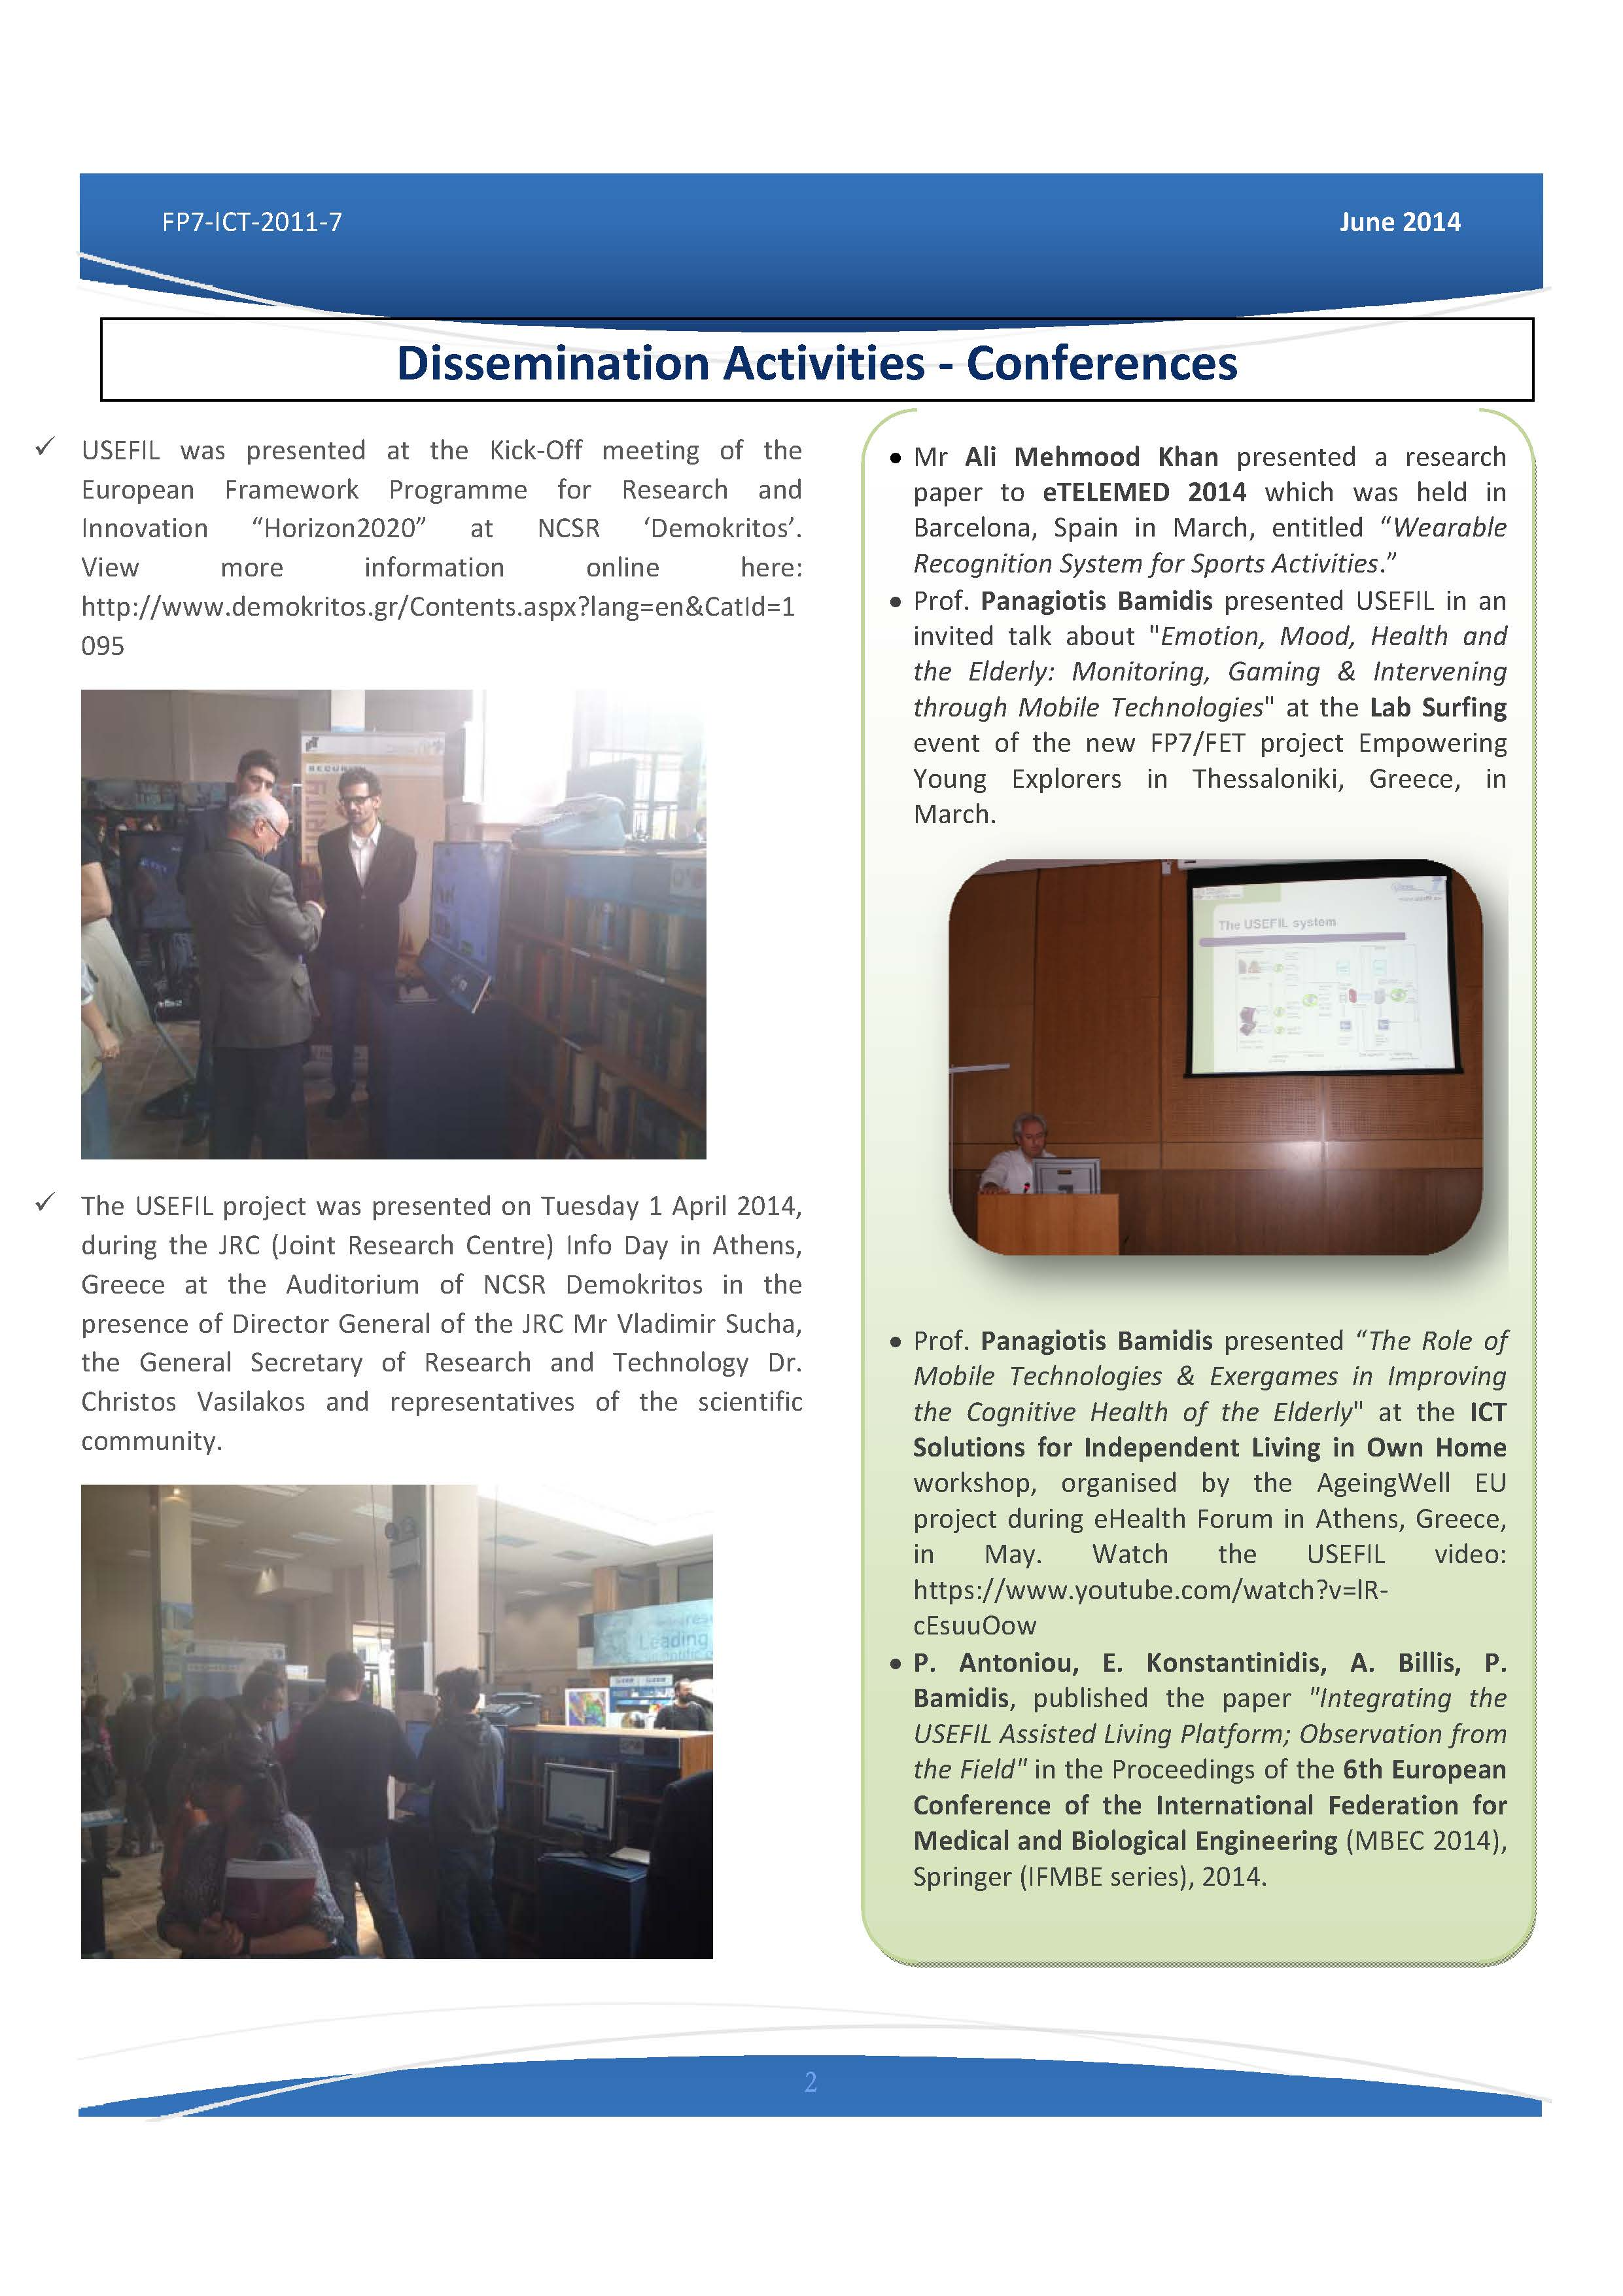 usefil_newsletter_june_2014_page_2